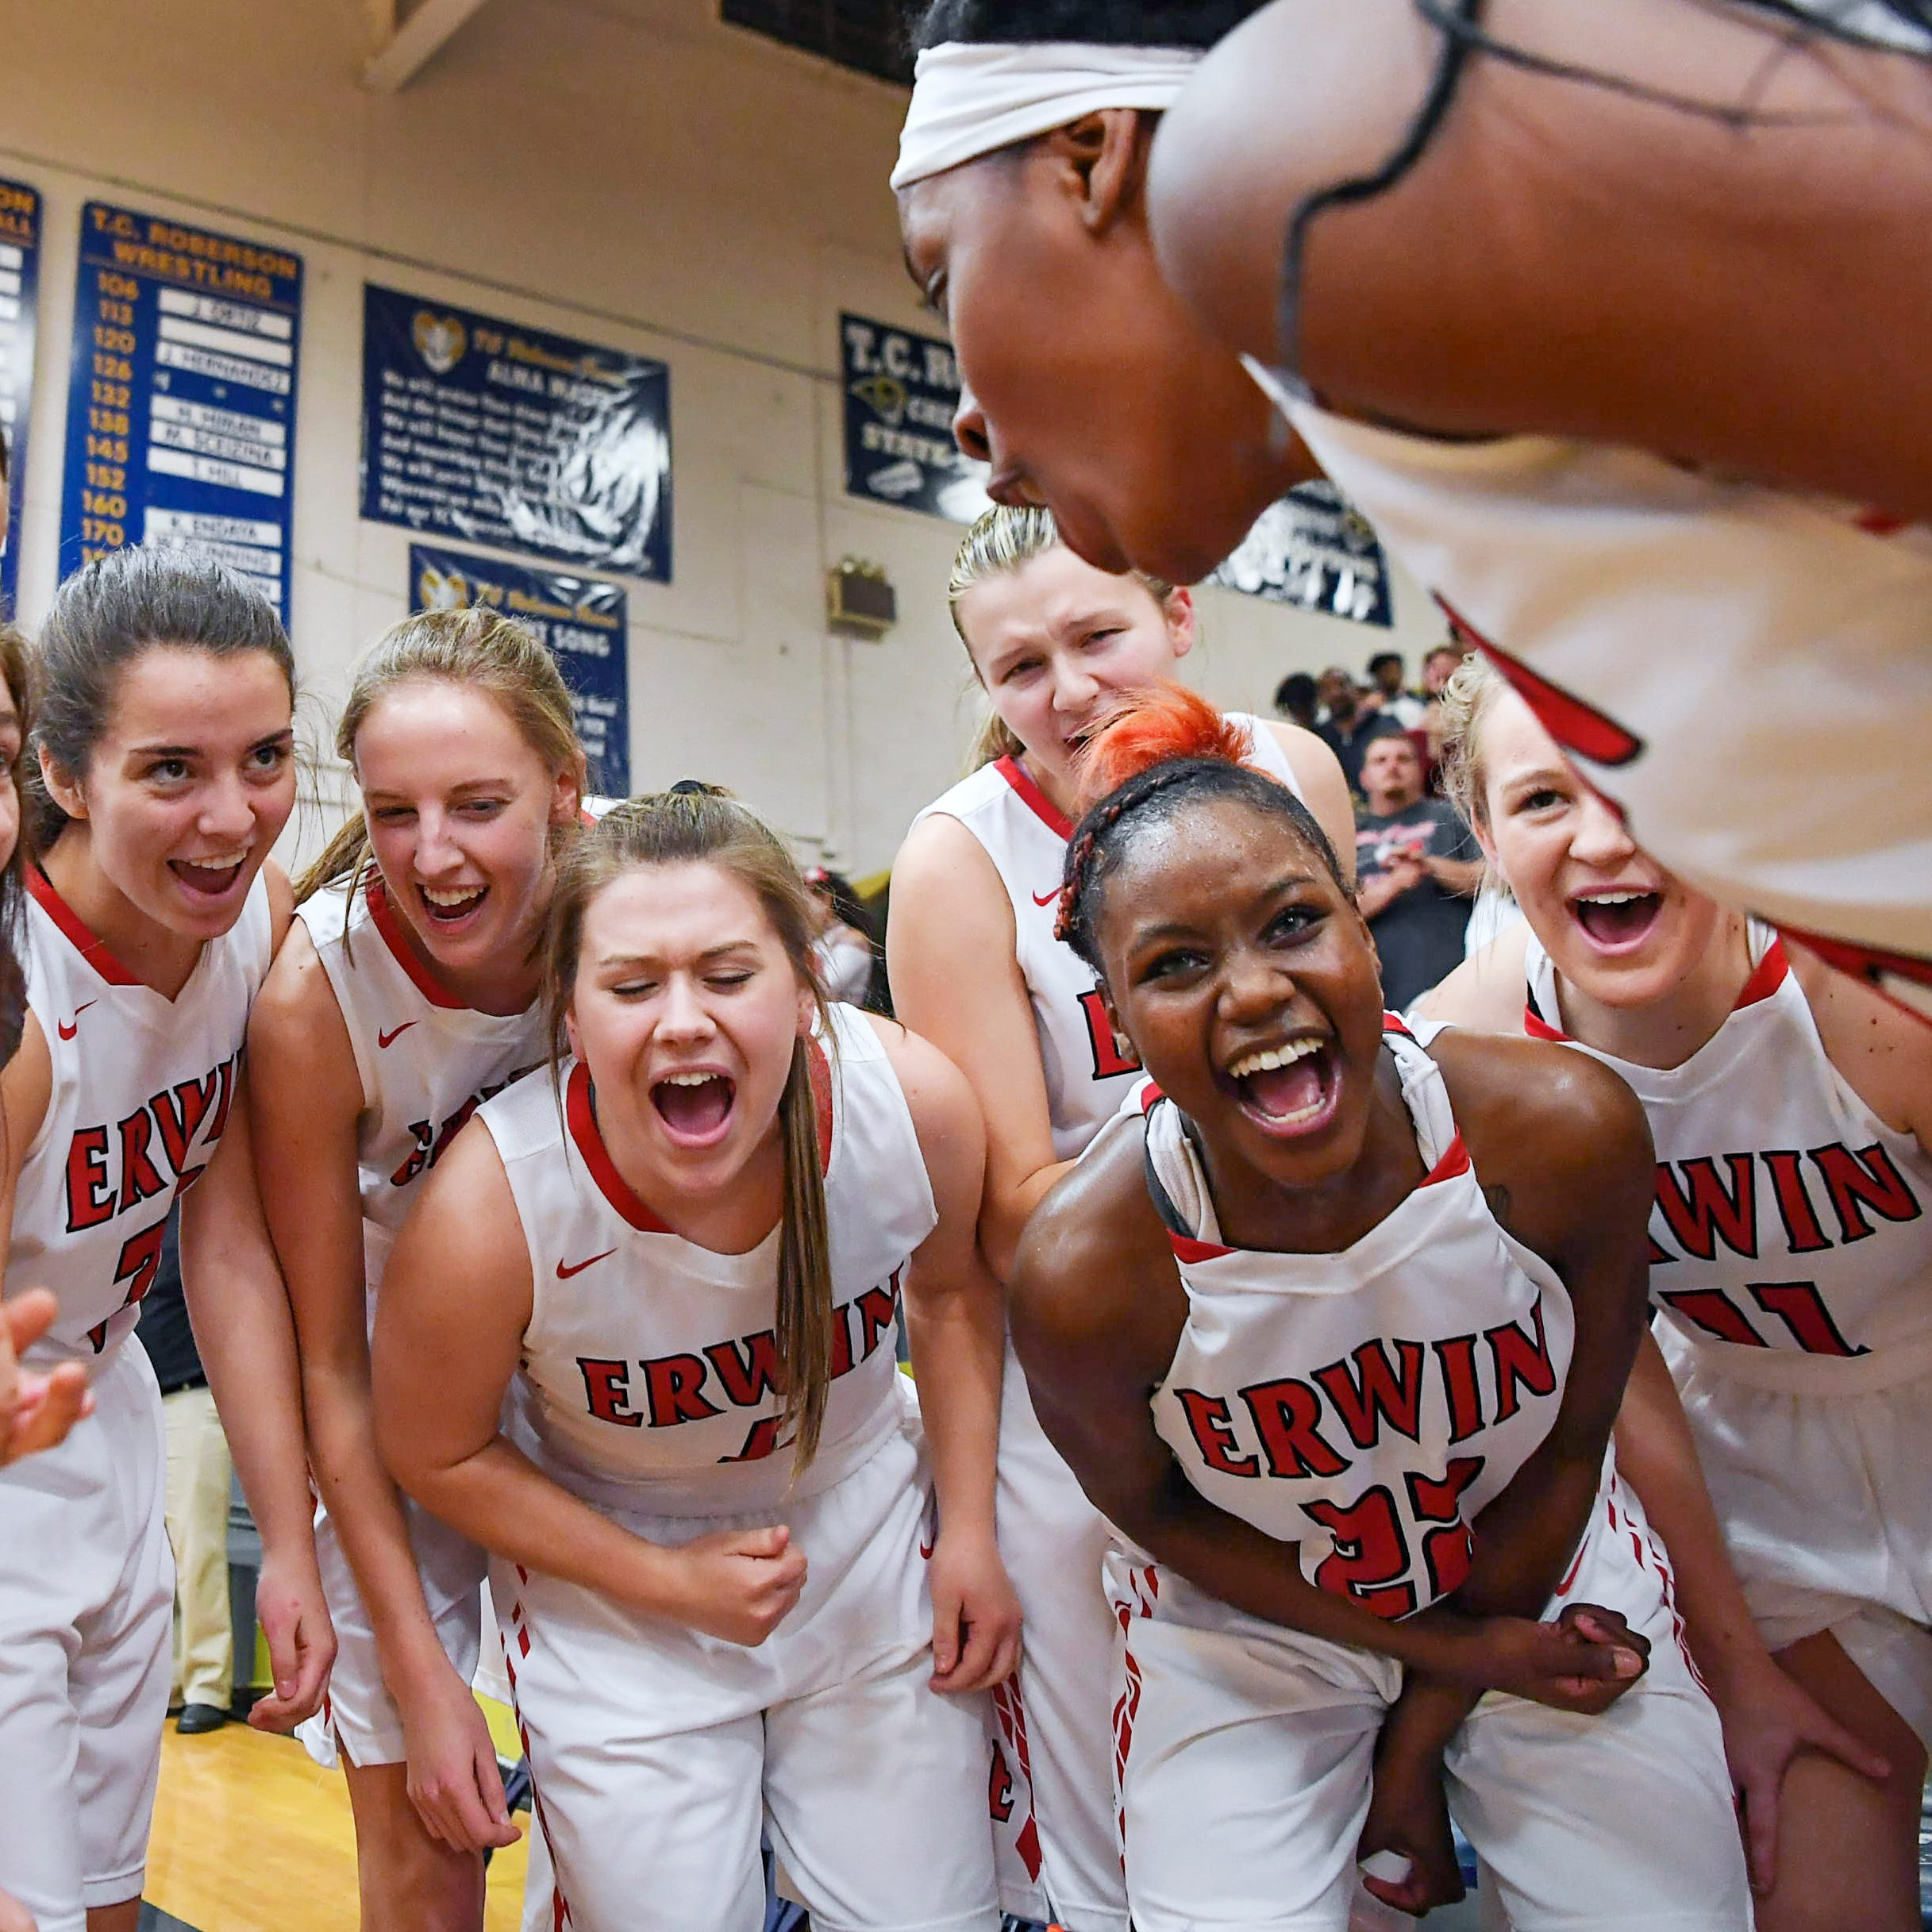 Erwin takes conference tournament title with win over Asheville High